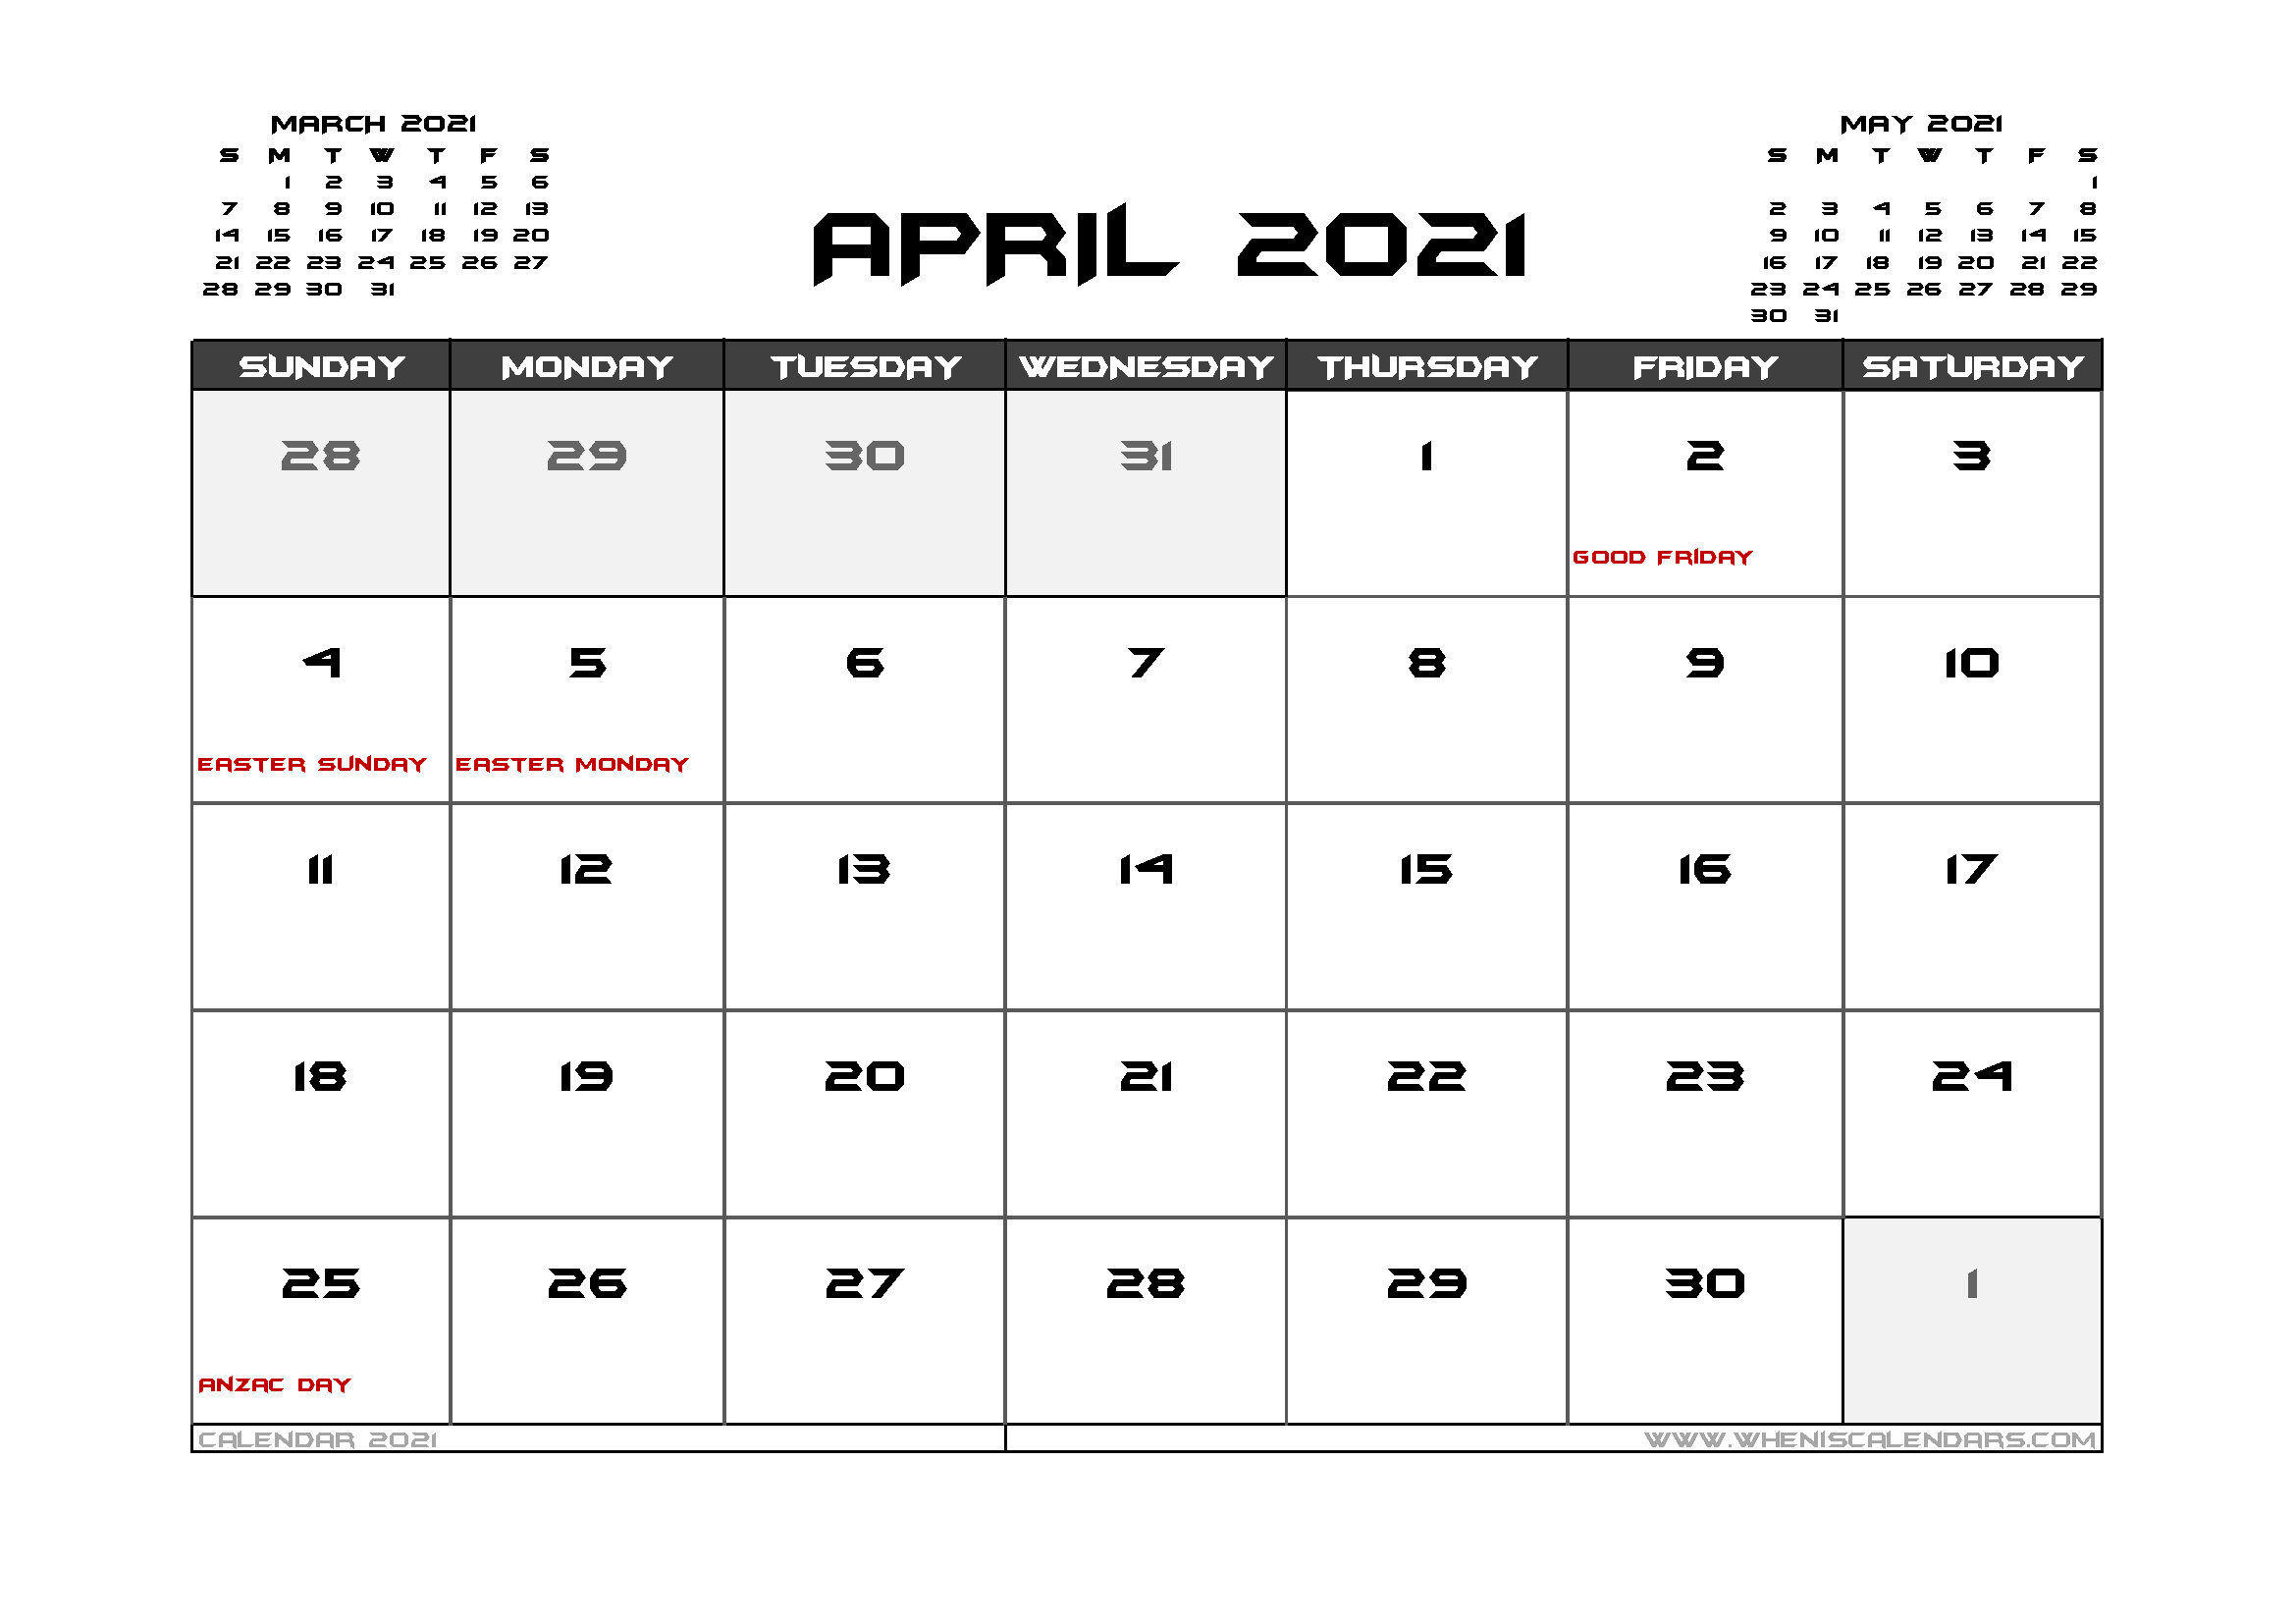 April 2021 Calendar Australia Printable In 2020 Calendar Uk 2021 Calendar Calendar Australia